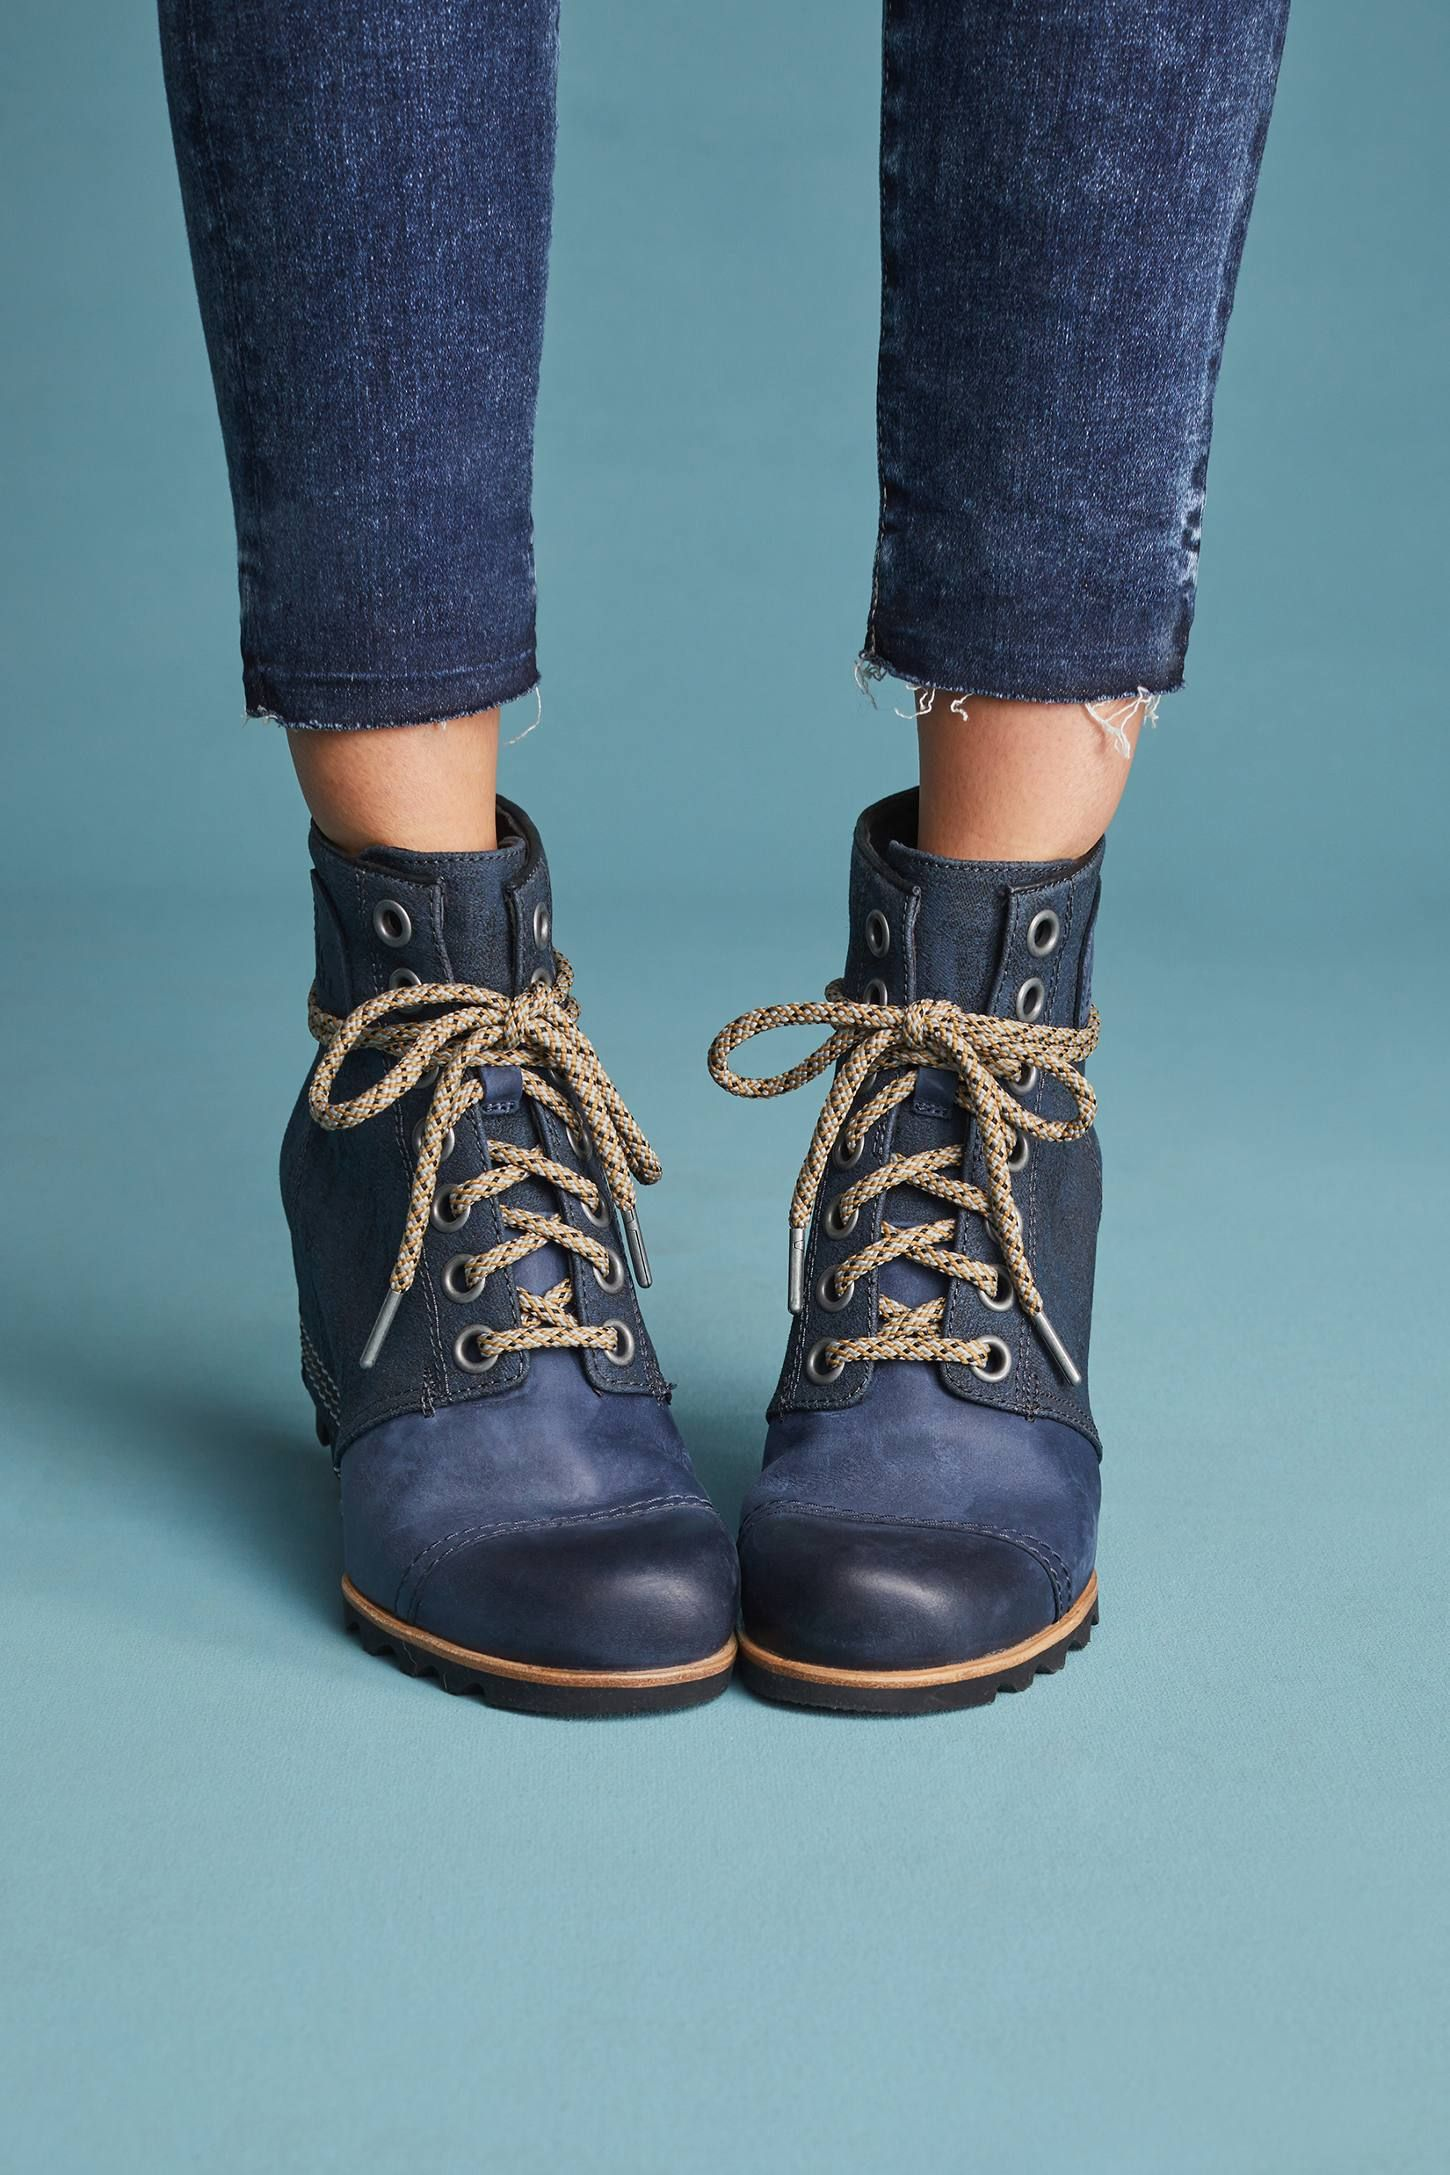 1599150e647 Shop the Sorel PDX Wedge Boots and more Anthropologie at Anthropologie  today. Read customer reviews